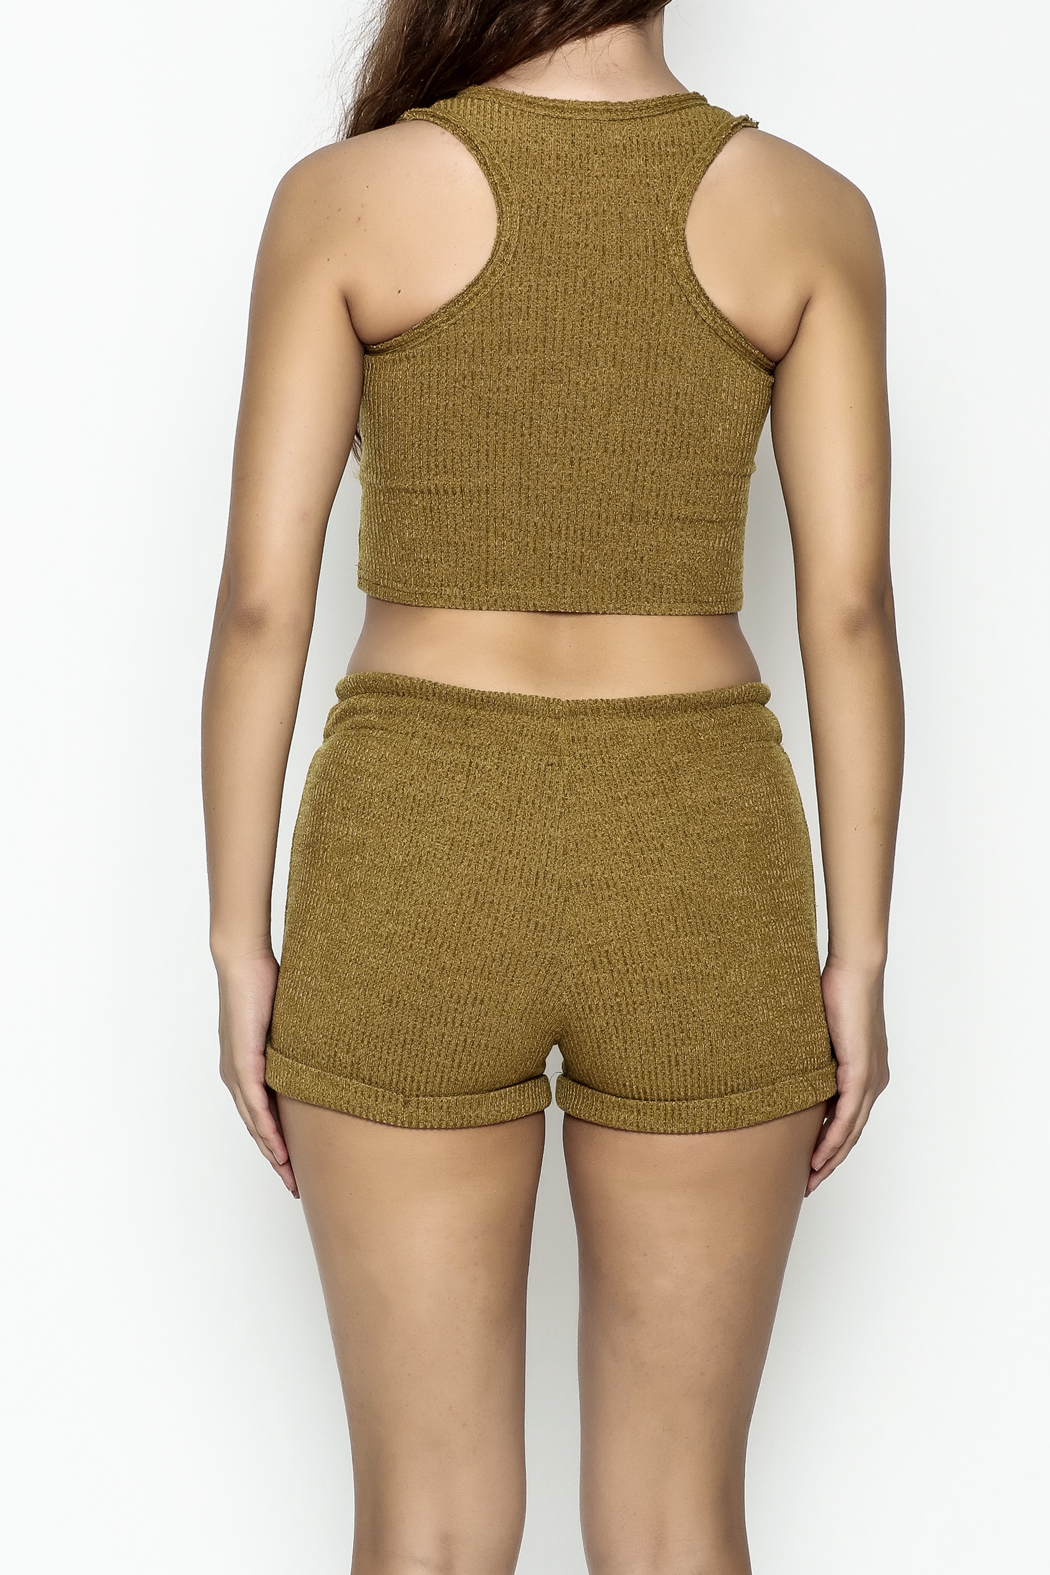 NUDE Bohemian Crop Top - Back Cropped Image